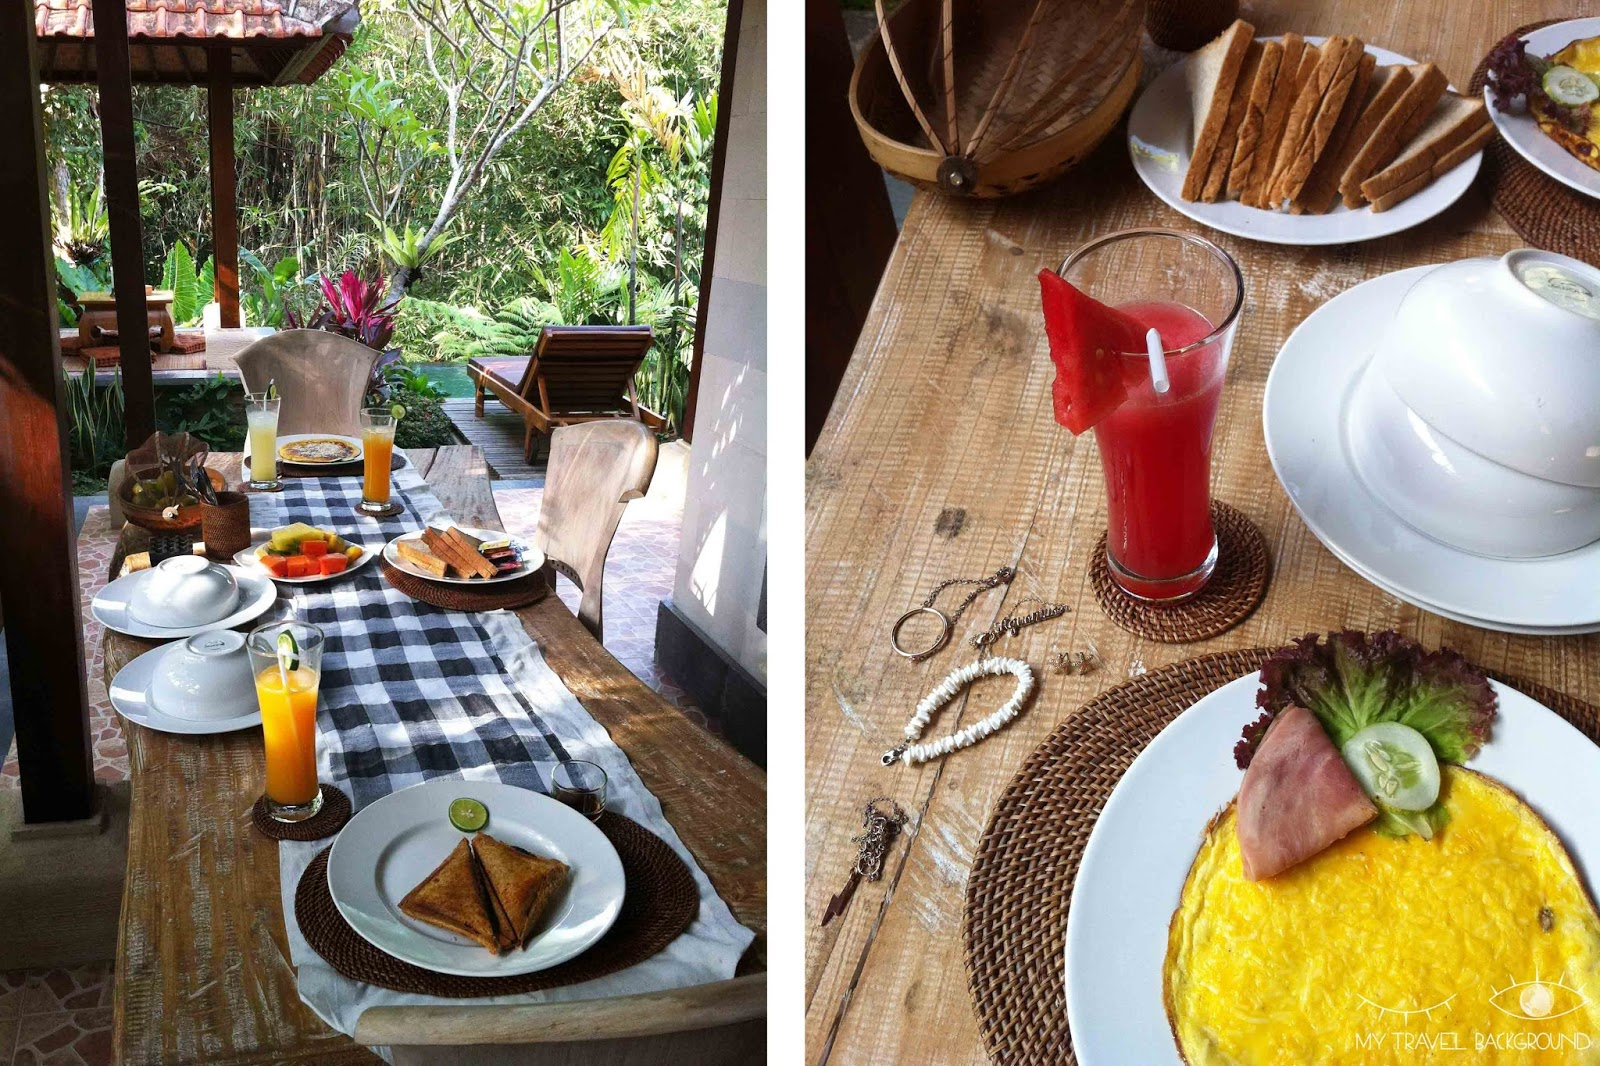 My Travel Background : 10 choses à faire à Bali - Manger dans des endroits incroyables